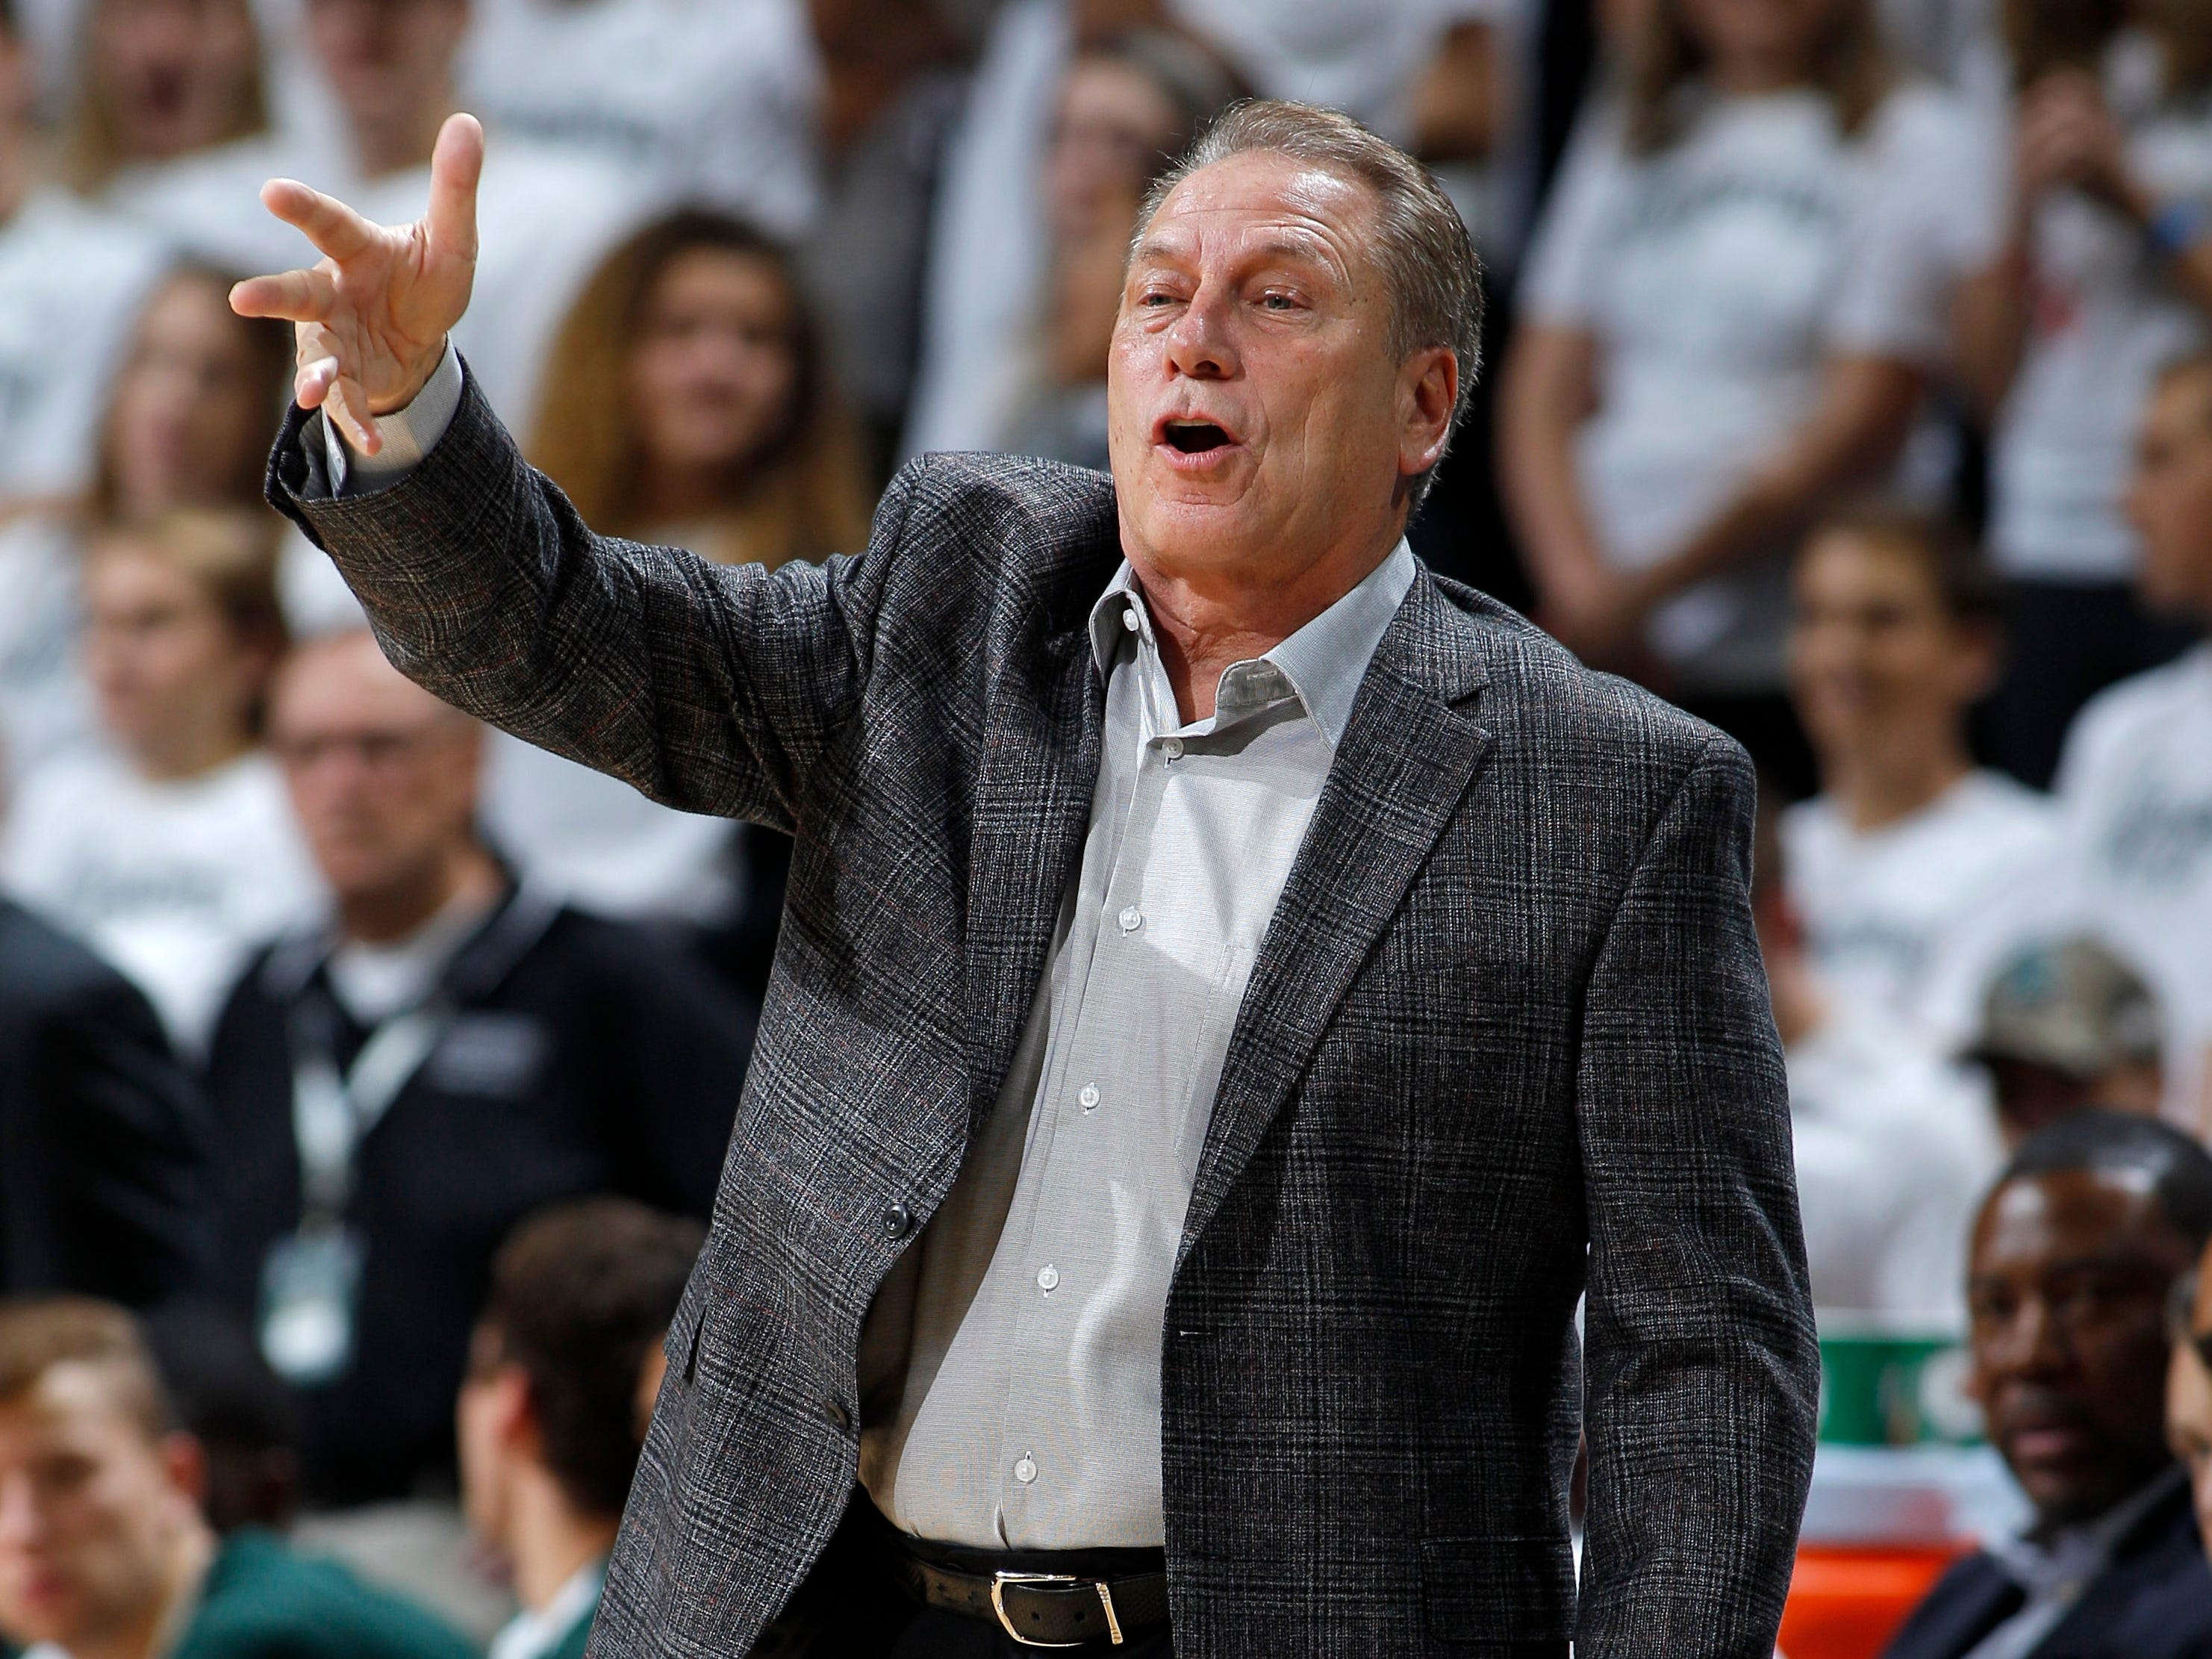 Michigan State coach Tom Izzo gives instructions against Northern Michigan, Tuesday, Oct. 30, 2018, in East Lansing, Mich.